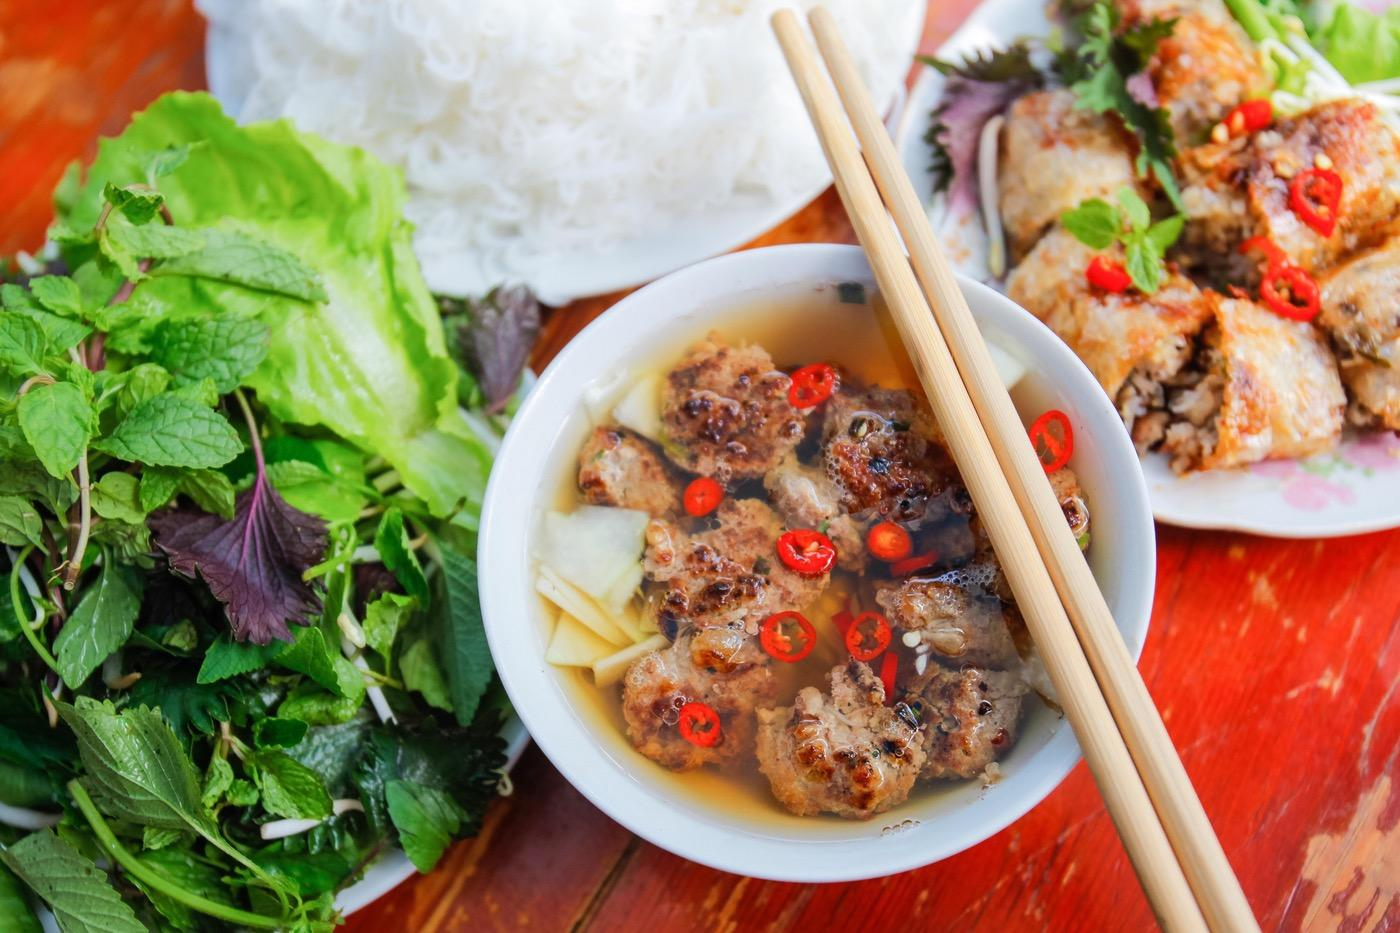 10 Local Favorite Foods To Try In Hanoi